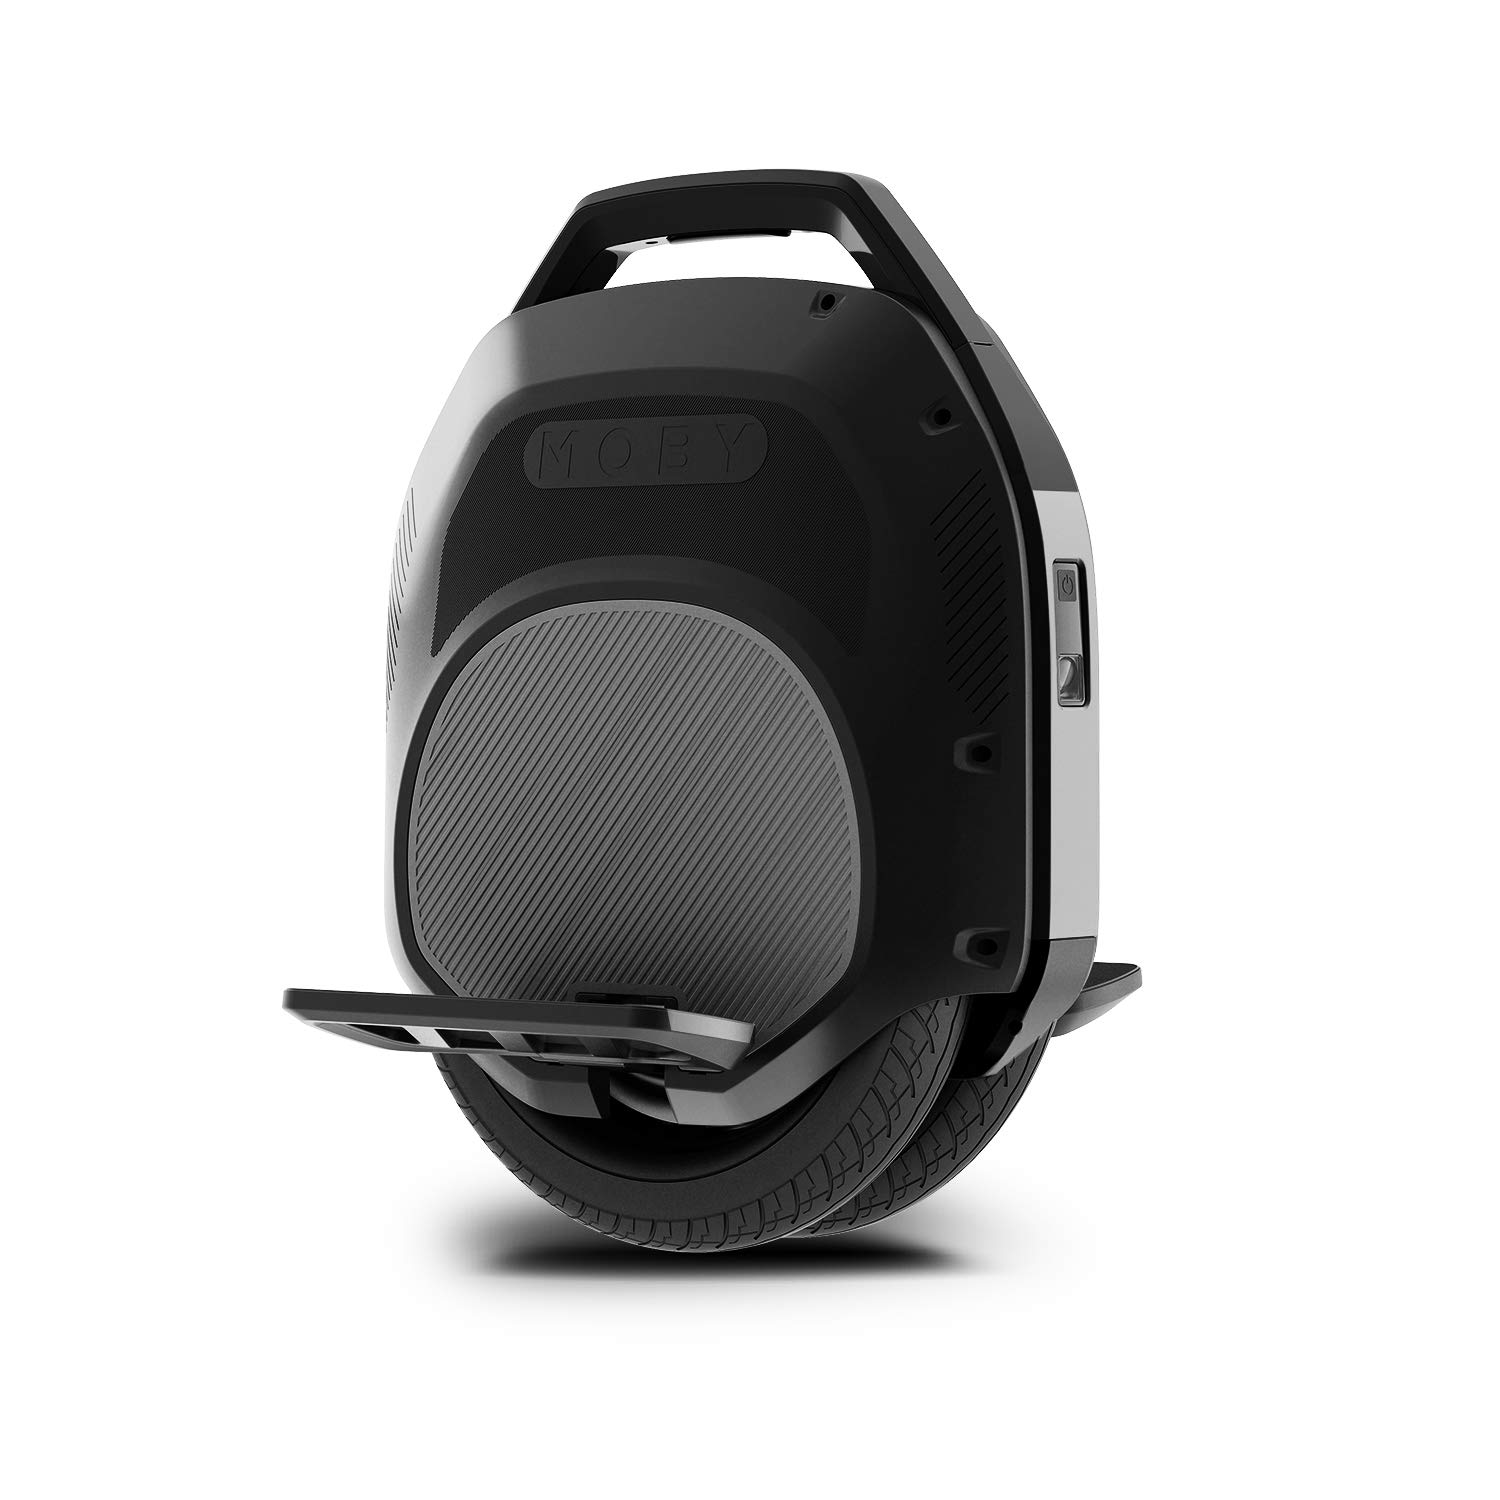 Hoverclub Solo Electric Unicycle, Single Wheeled Unicycles, Self Balancing Training Wheels with 500 Motor, Dual Air-Filled Tires, Retractable Handle for Commuting and Travel by Hoverclub